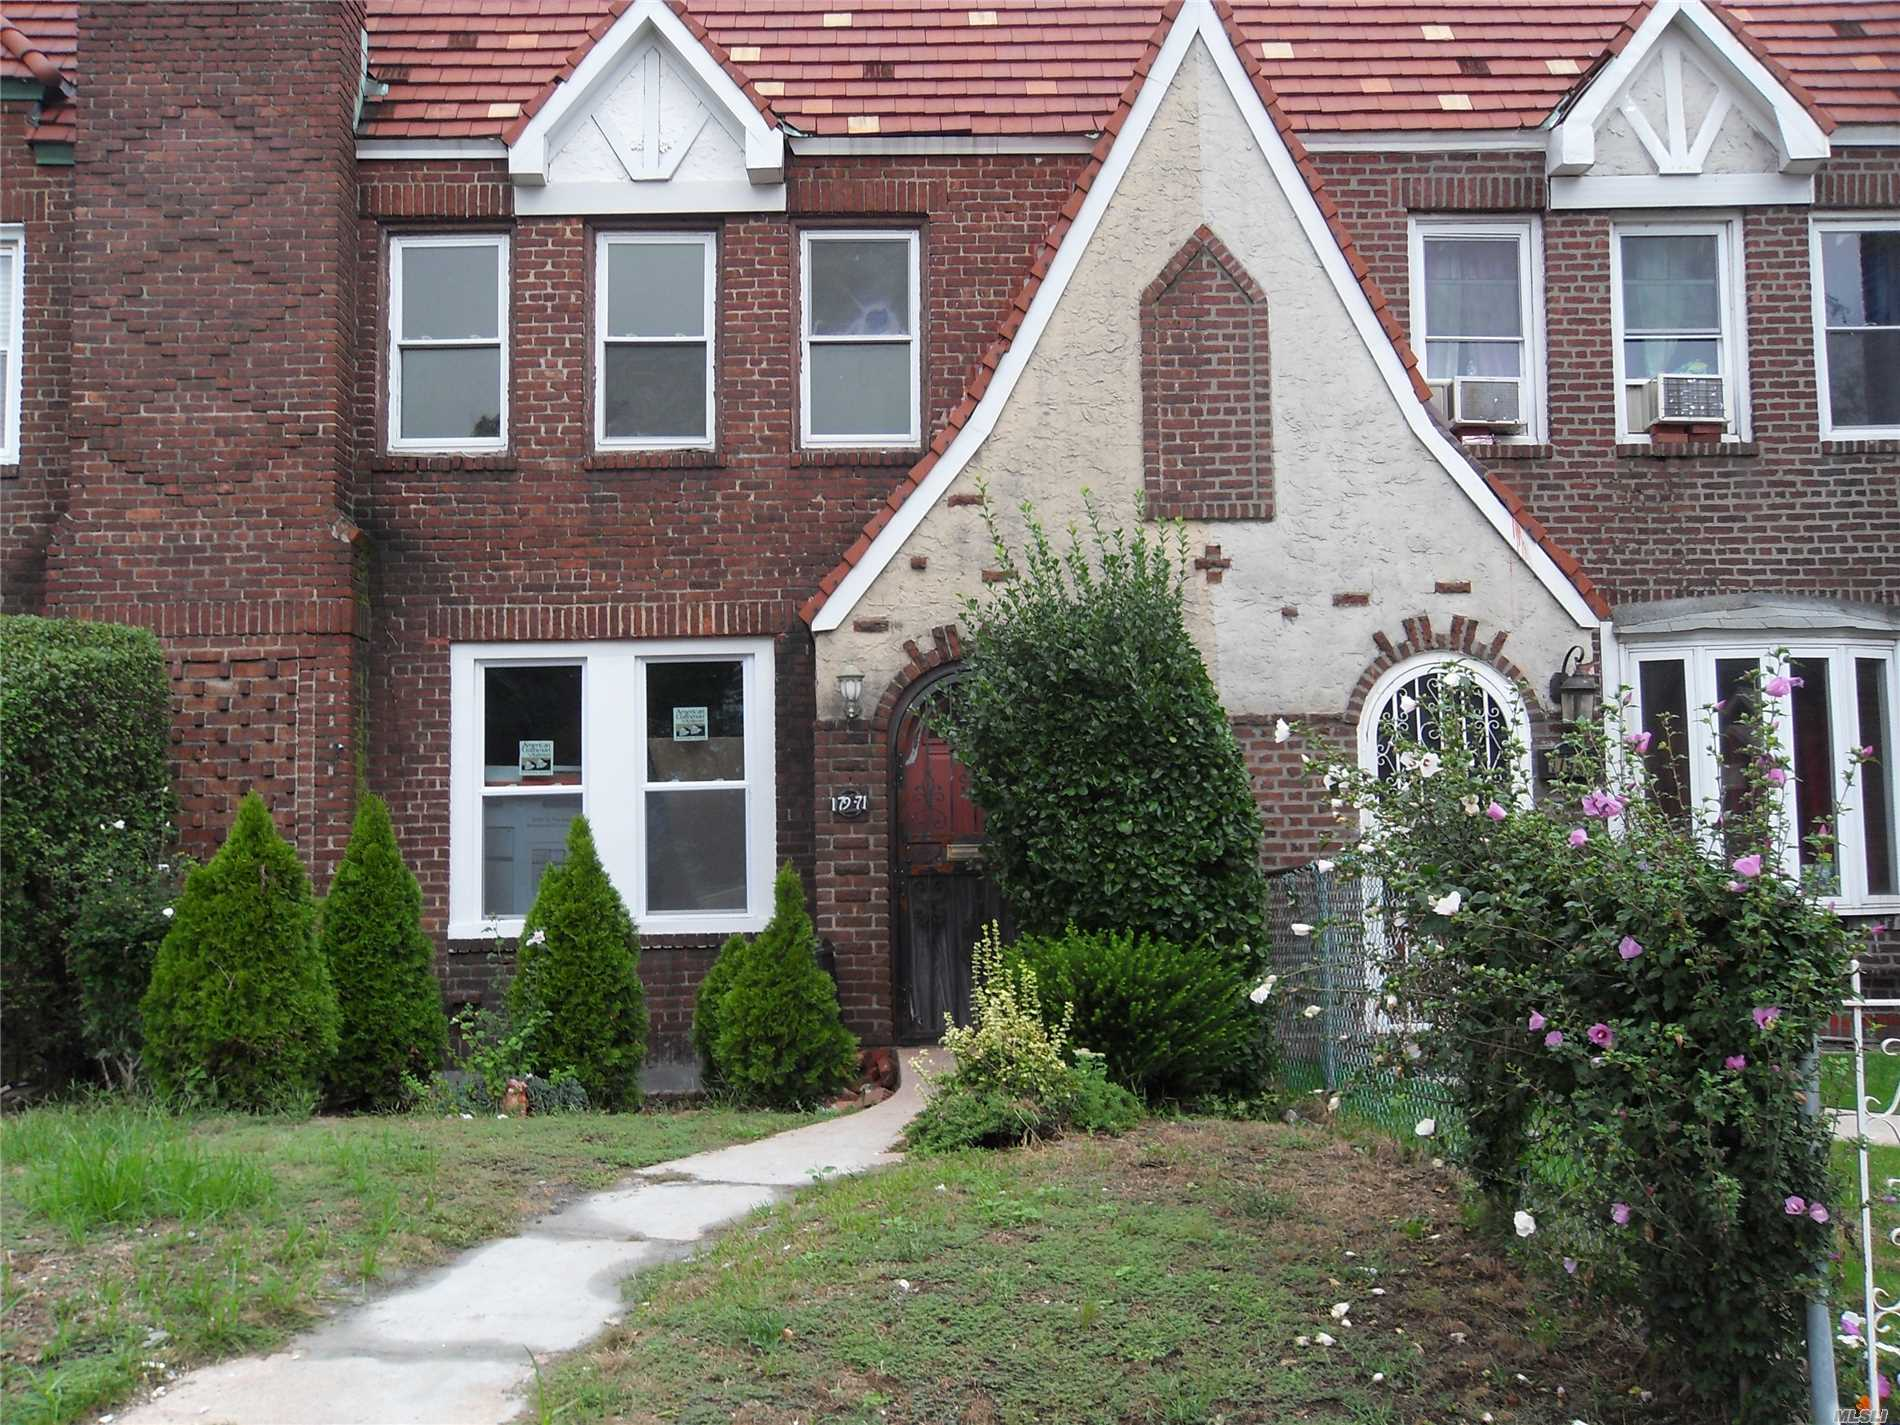 Renovated Brick Tudor Home, Large Livingroom, Formal Diningroom W/Sliding Doors To Patio, Updated Kitchen - Stainless Steele Appliances, 3 Bedrooms, 2.5 Bathrooms, Finished Basement With High Ceilings, Additional Fireplace And Separate Outside Entrance